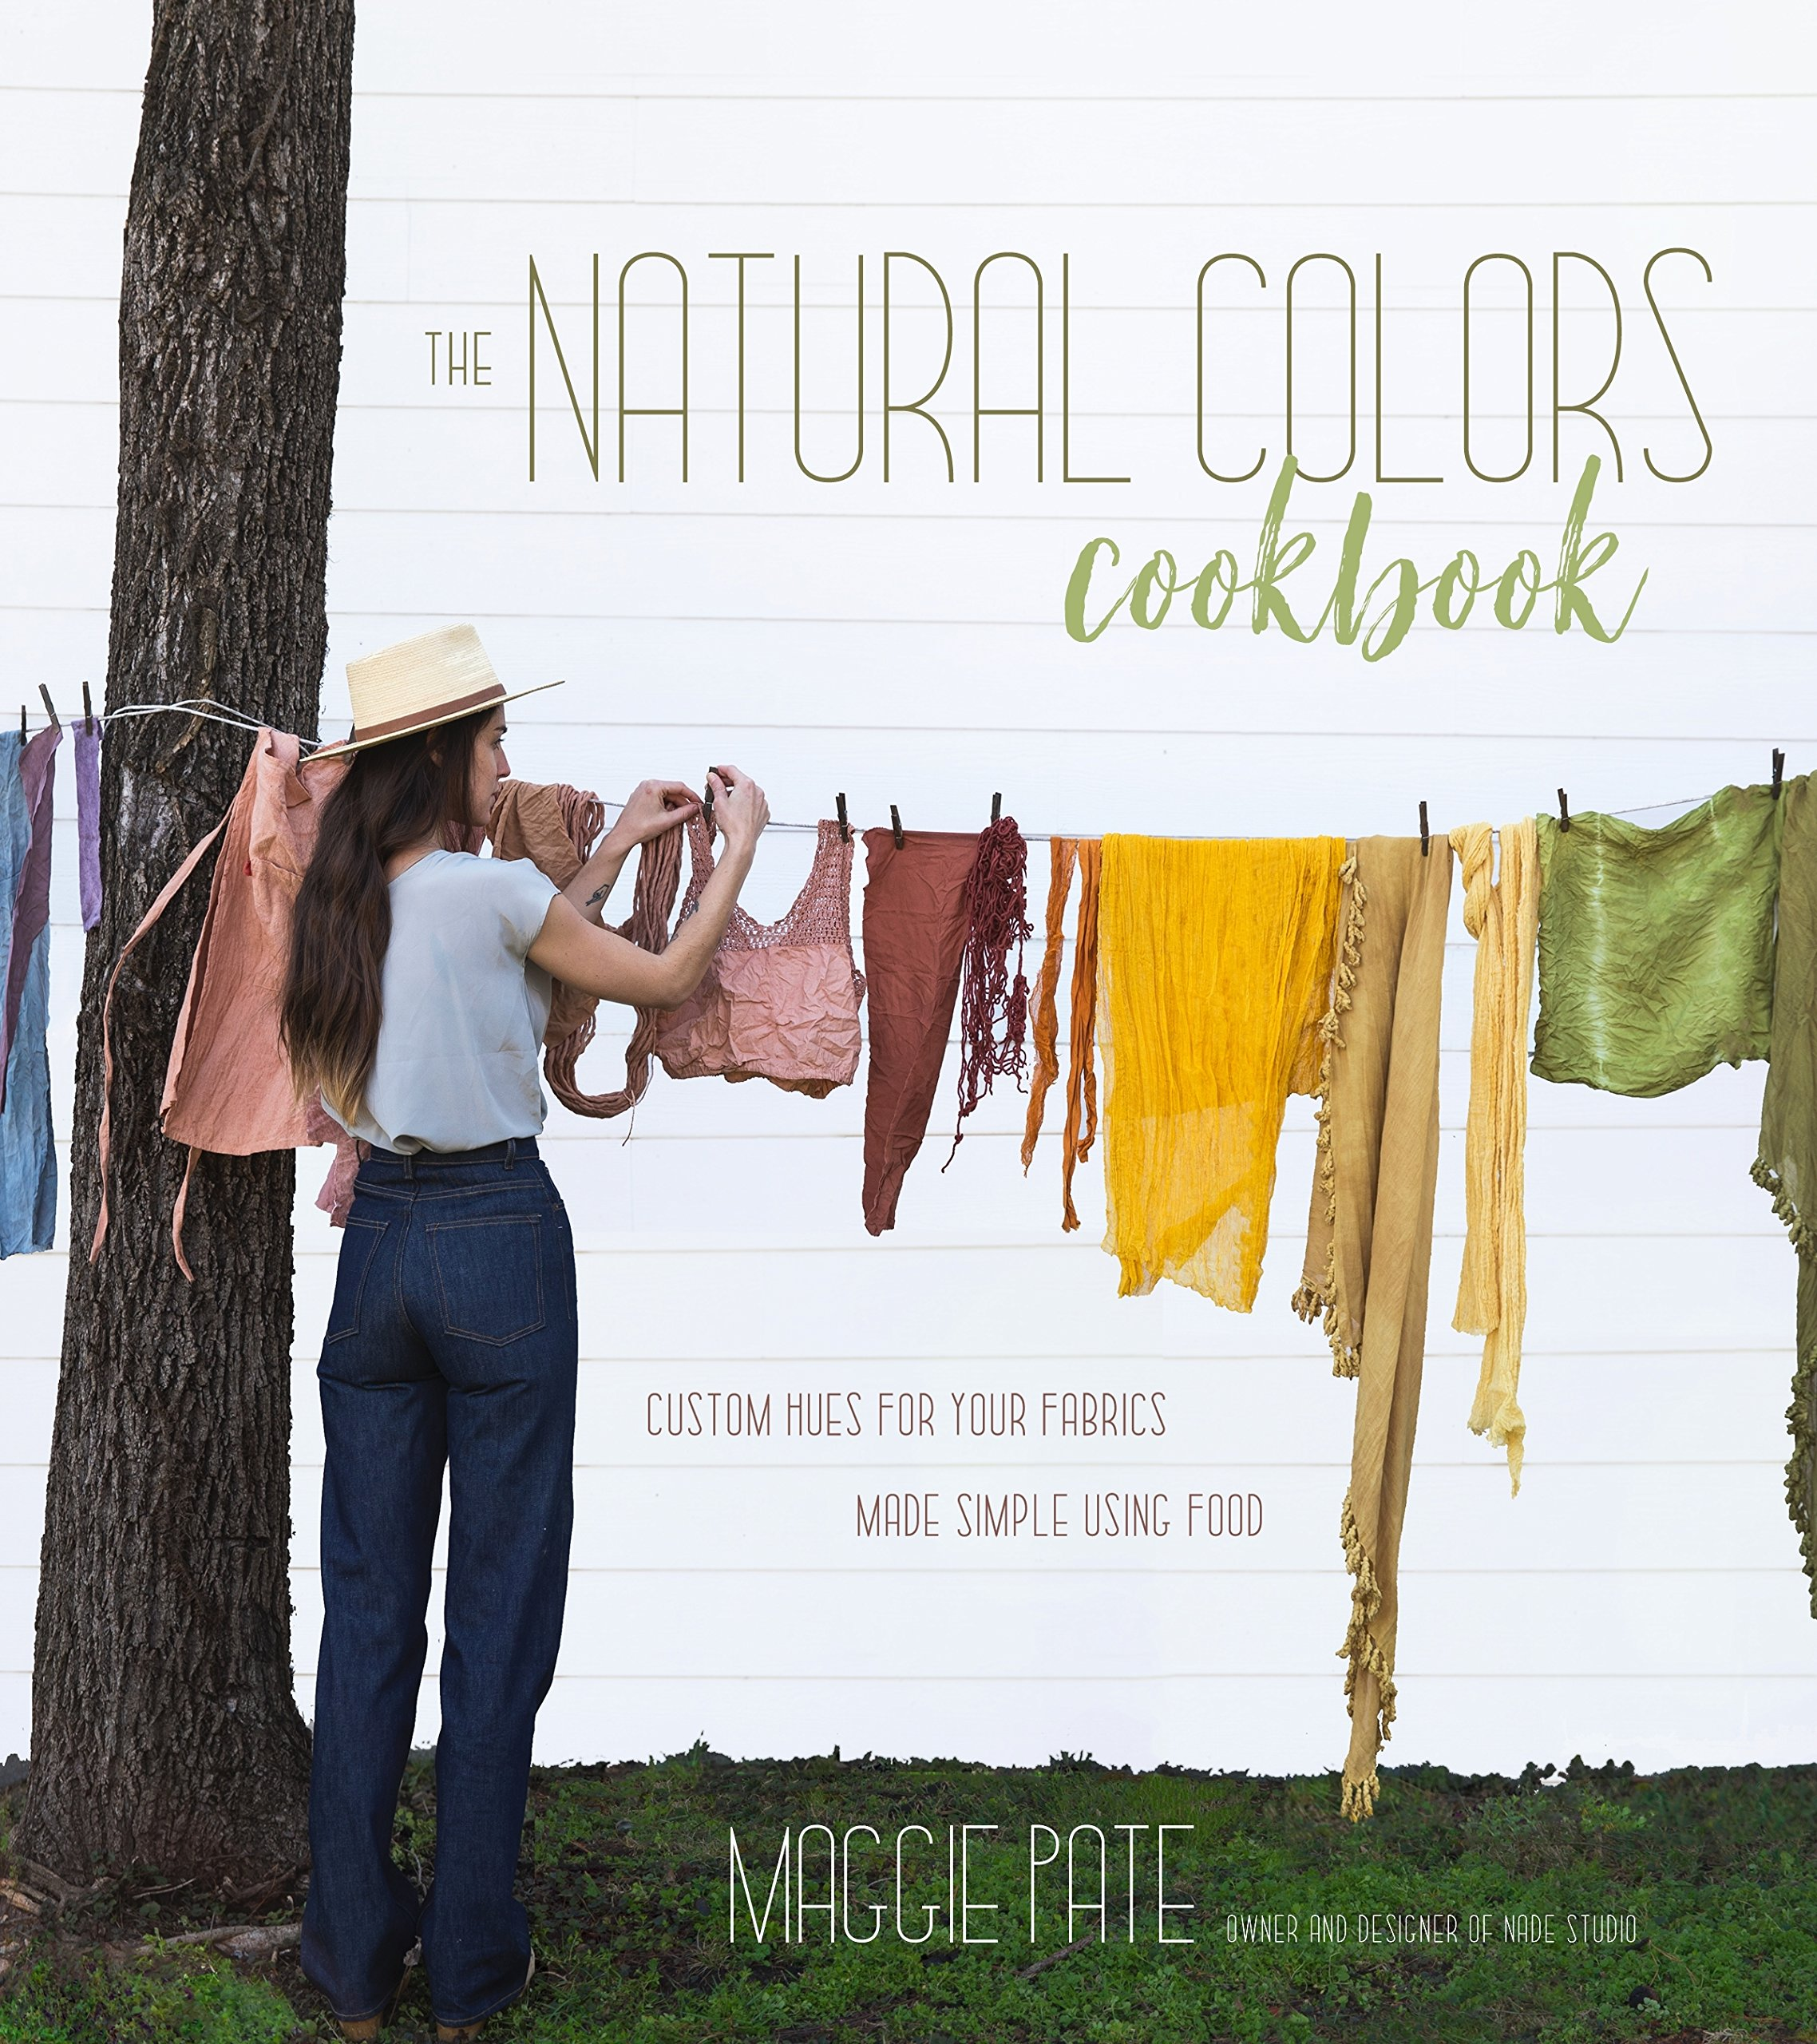 The Natural Colors Cookbook: Custom Hues For Your Fabrics Made Simple Using Food